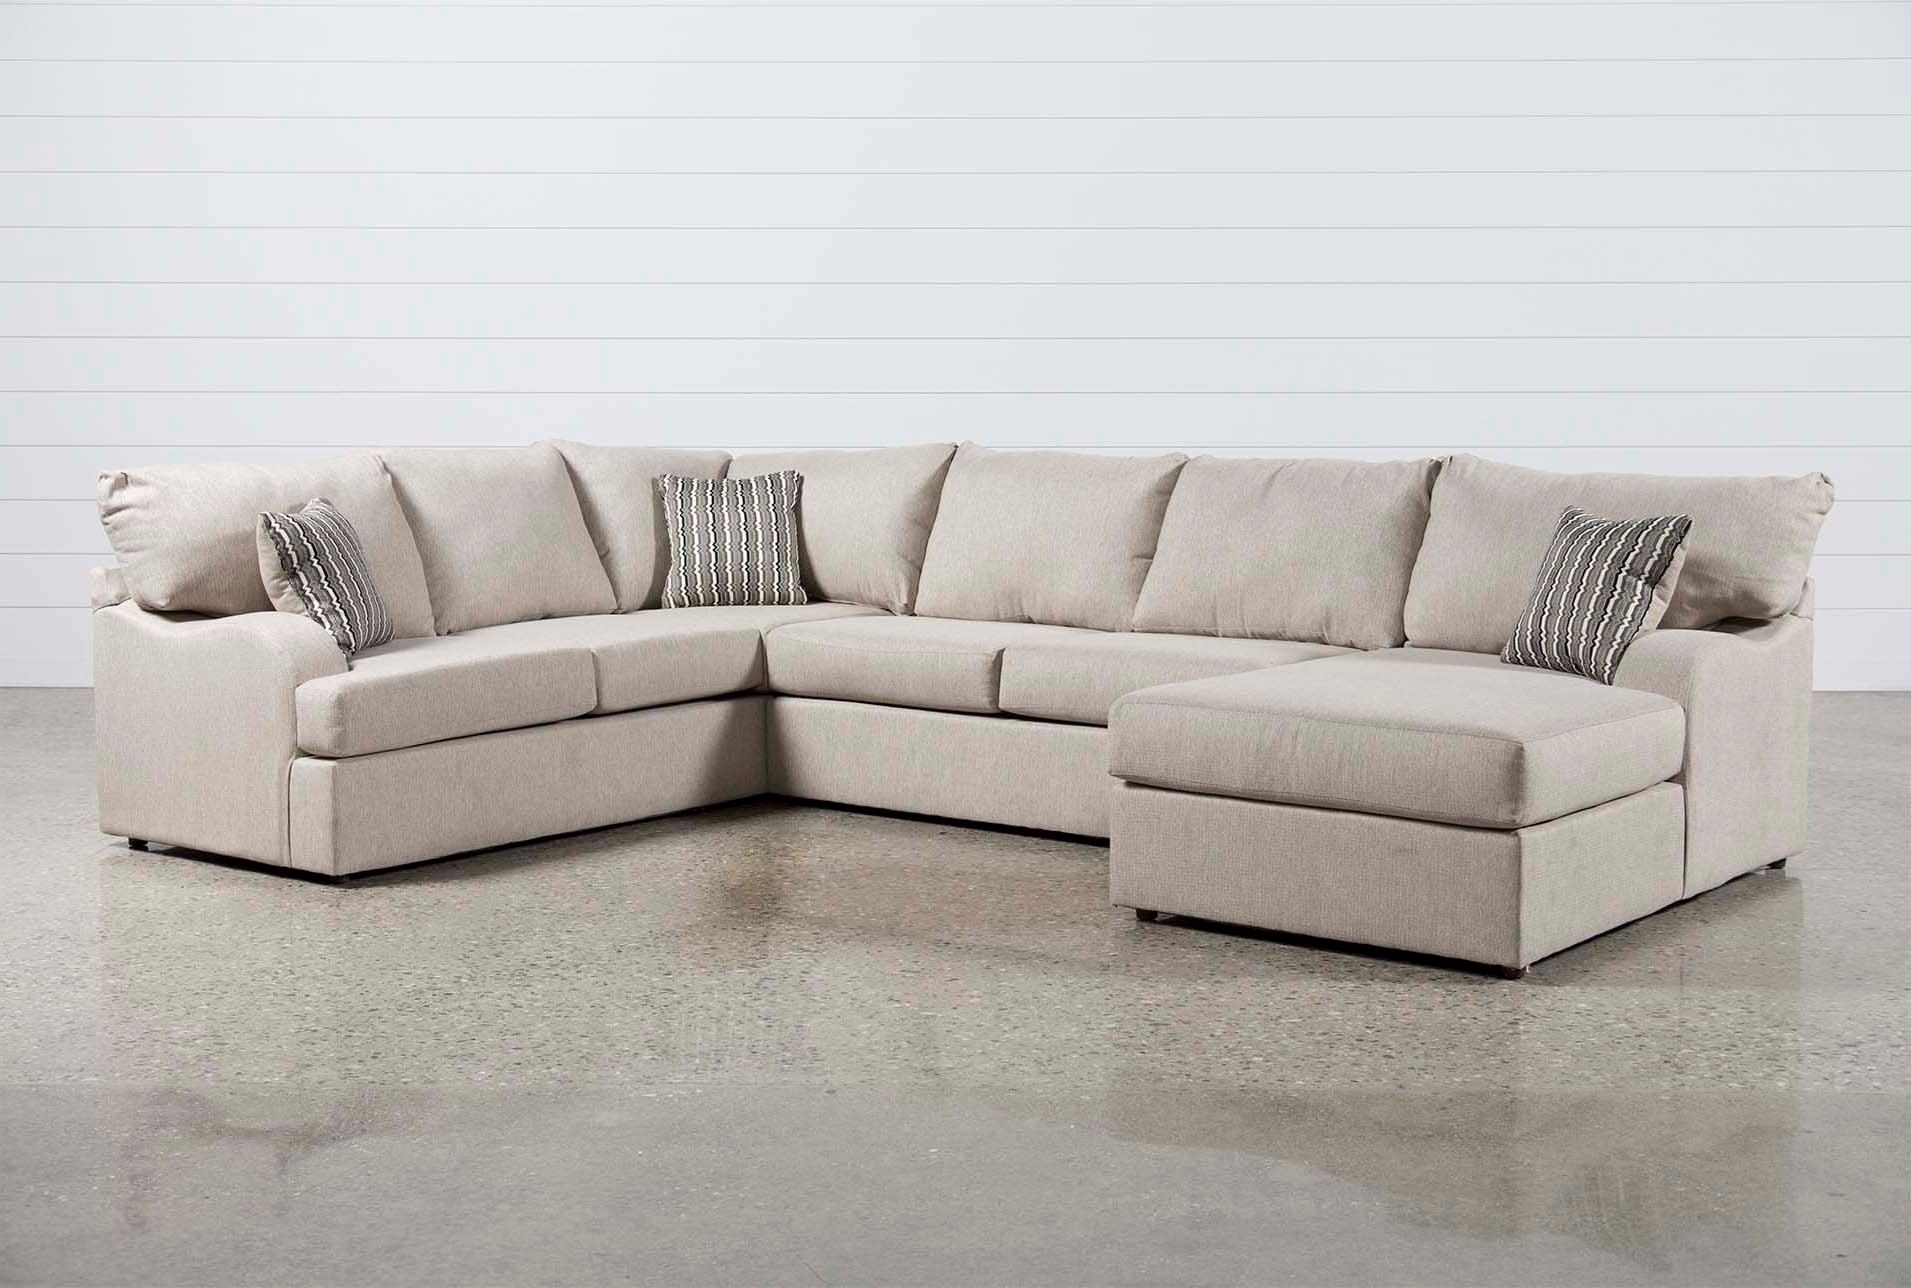 Raf Sectional Turdur 3 Piece W Loveseat Living Spaces 223462 0 Jpg Within Turdur 3 Piece Sectionals With Raf Loveseat (View 2 of 25)